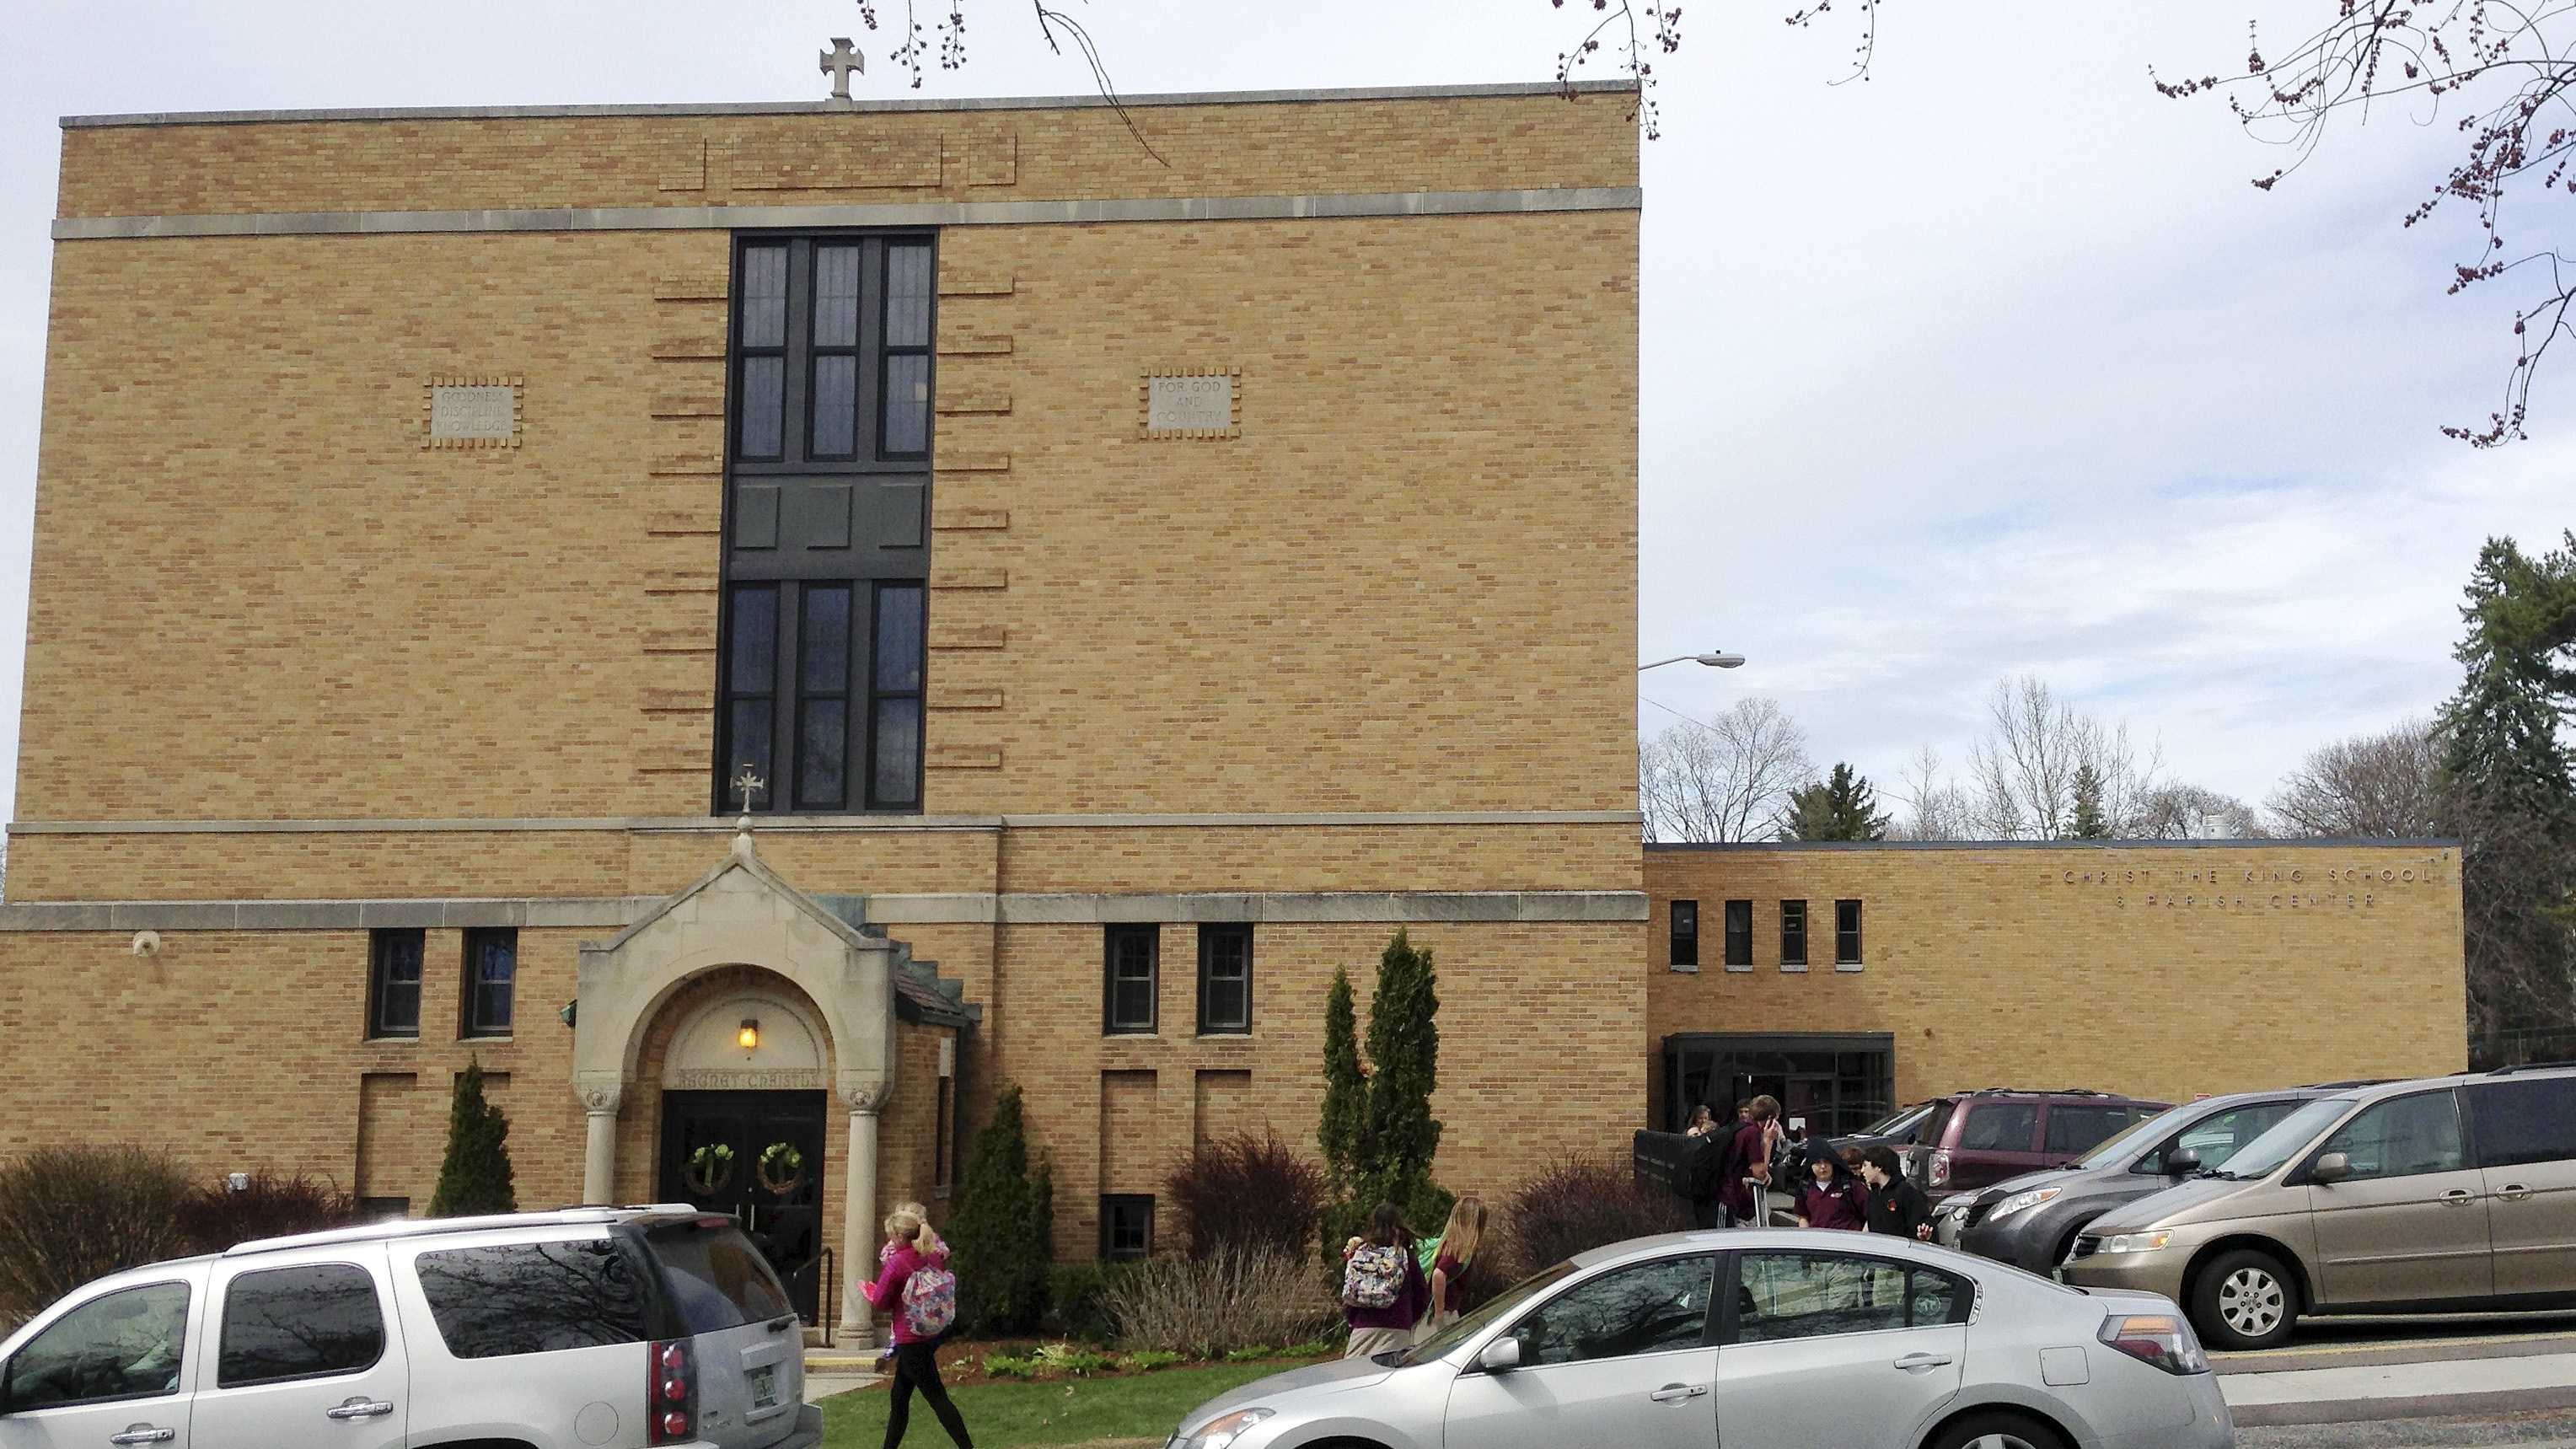 In this April 29, 2015 photo, parents pick up their children at the end of the school day at Christ the King School in Burlington, Vt. The church's sound system that plays recorded bells and hymns has struck a chord with some neighbors, who find it noisy and intrusive.